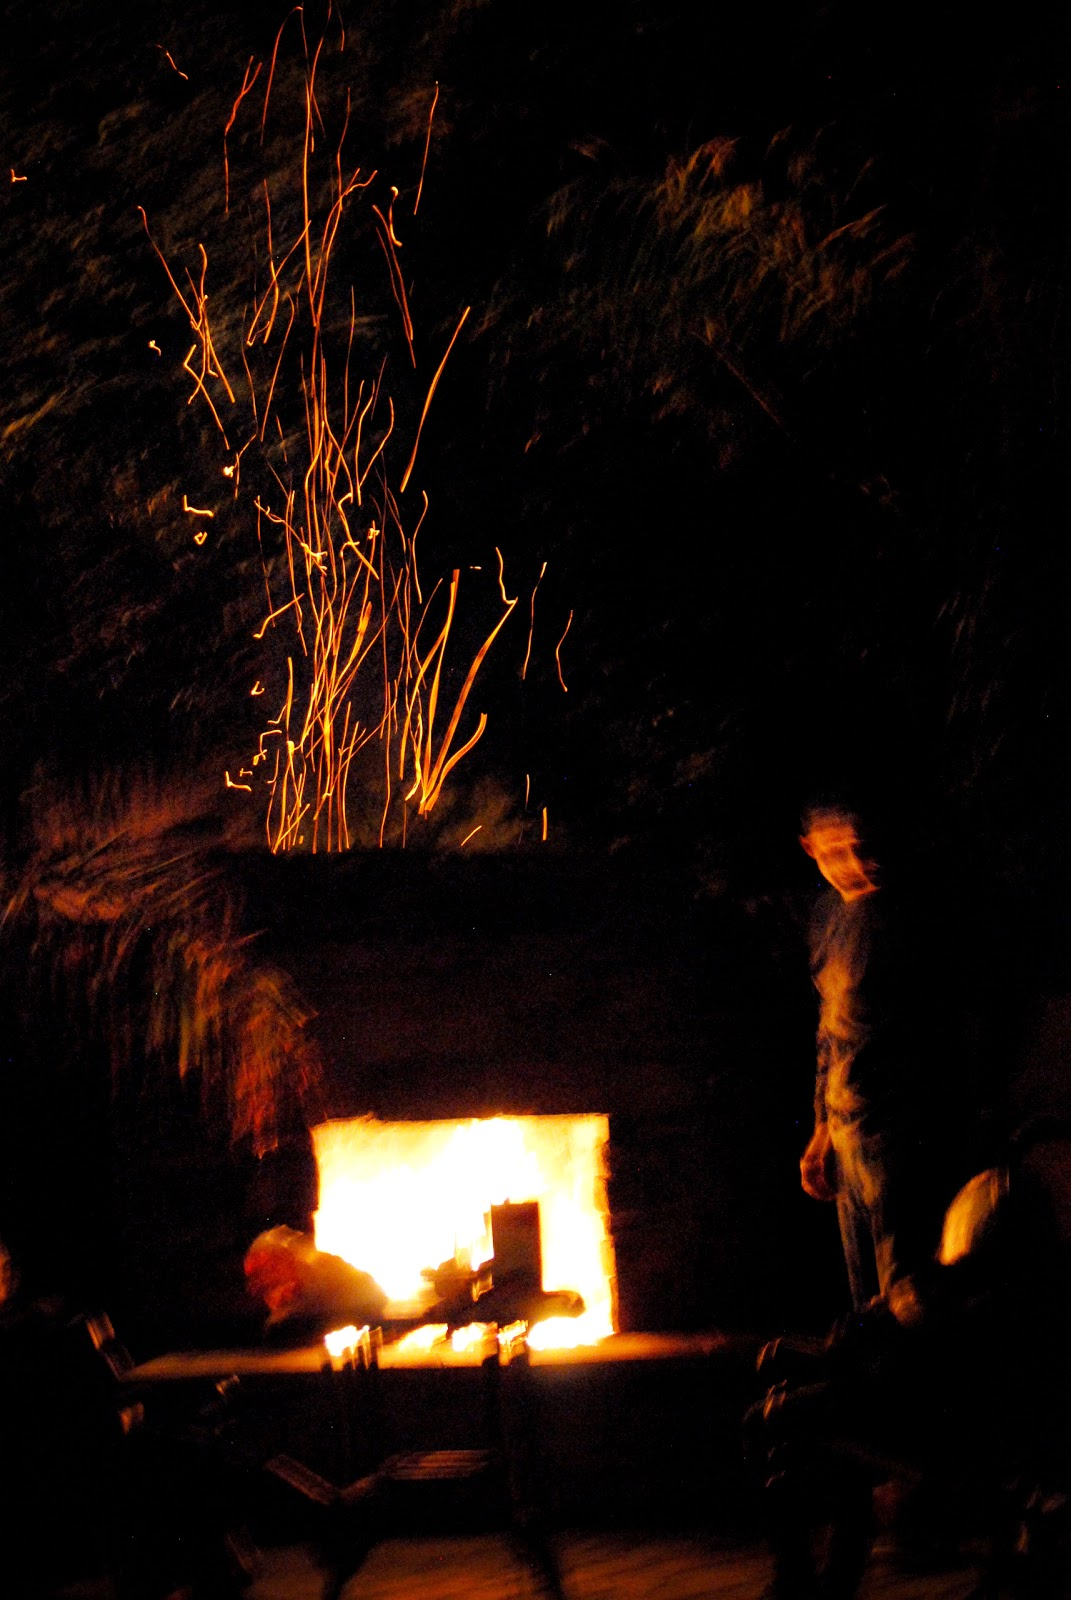 earl family blog: the annual Christmas tree burning!